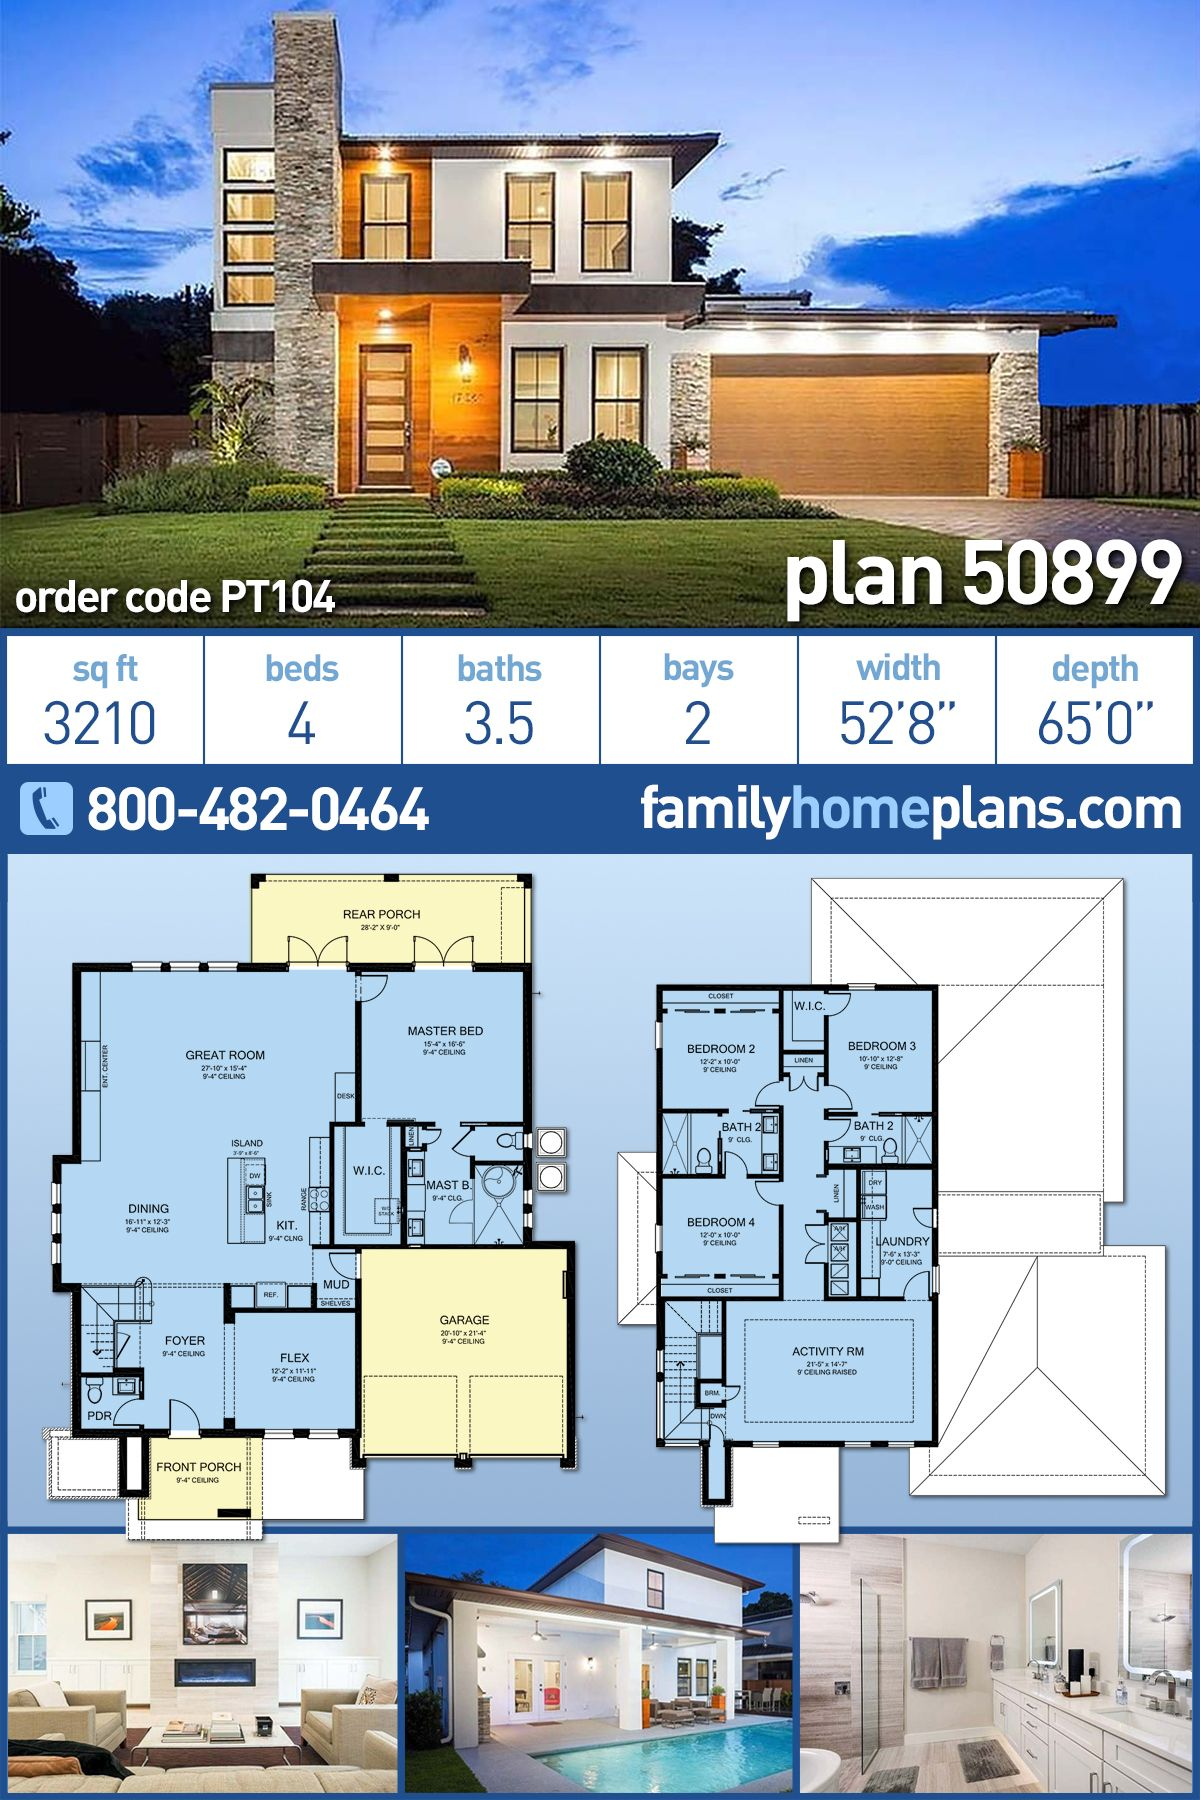 Modern Style House Plan 50899 With 4 Bed 4 Bath 2 Car Garage